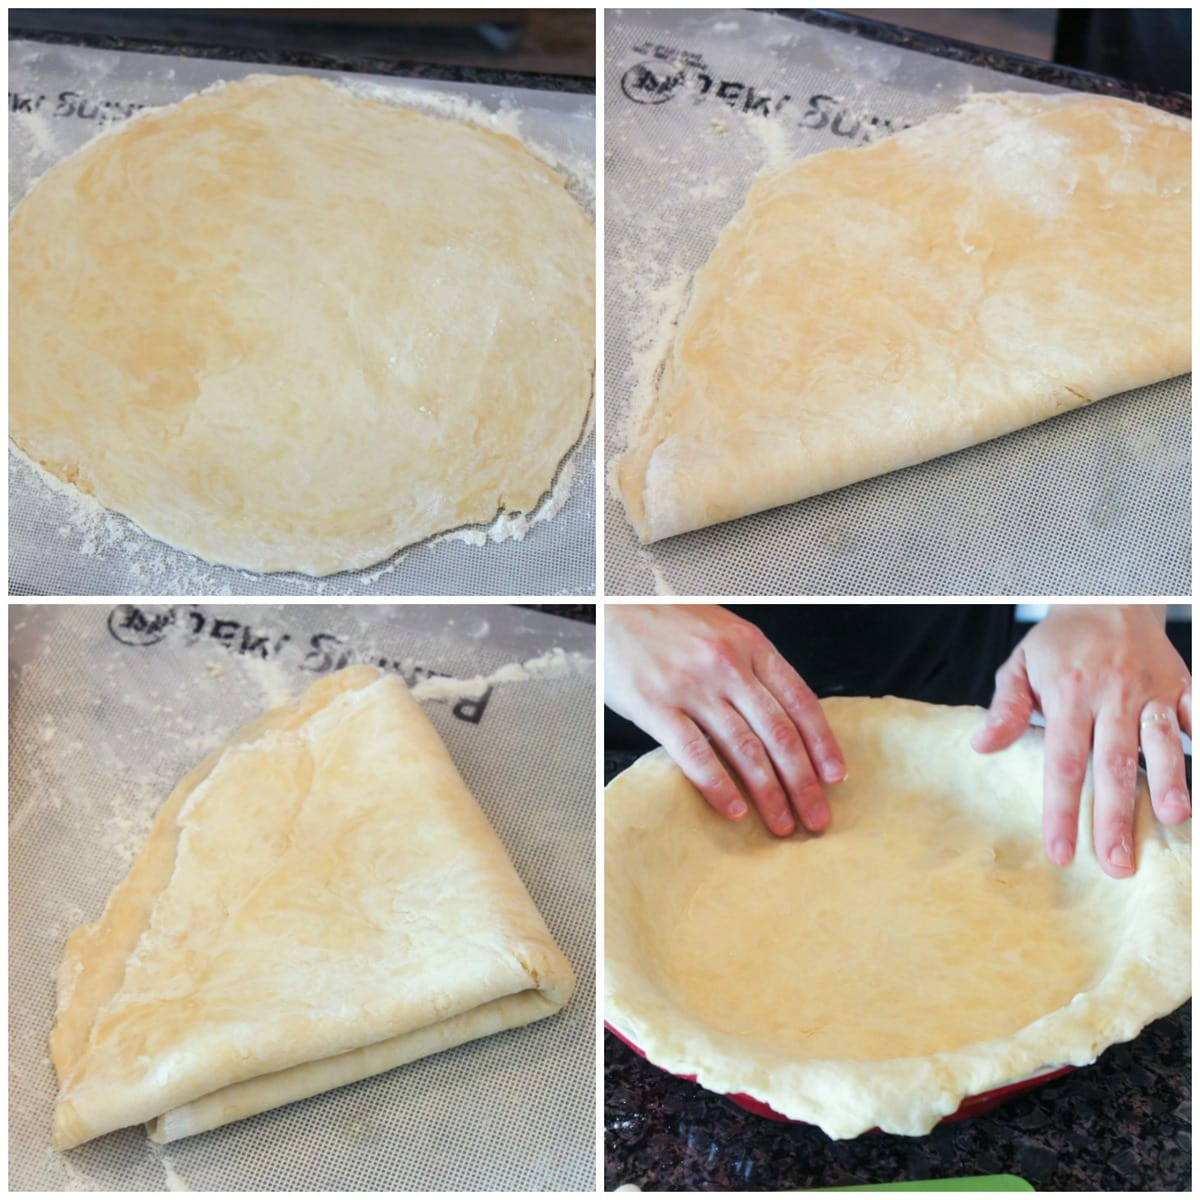 How to make Apple Pie Crust Recipe process images